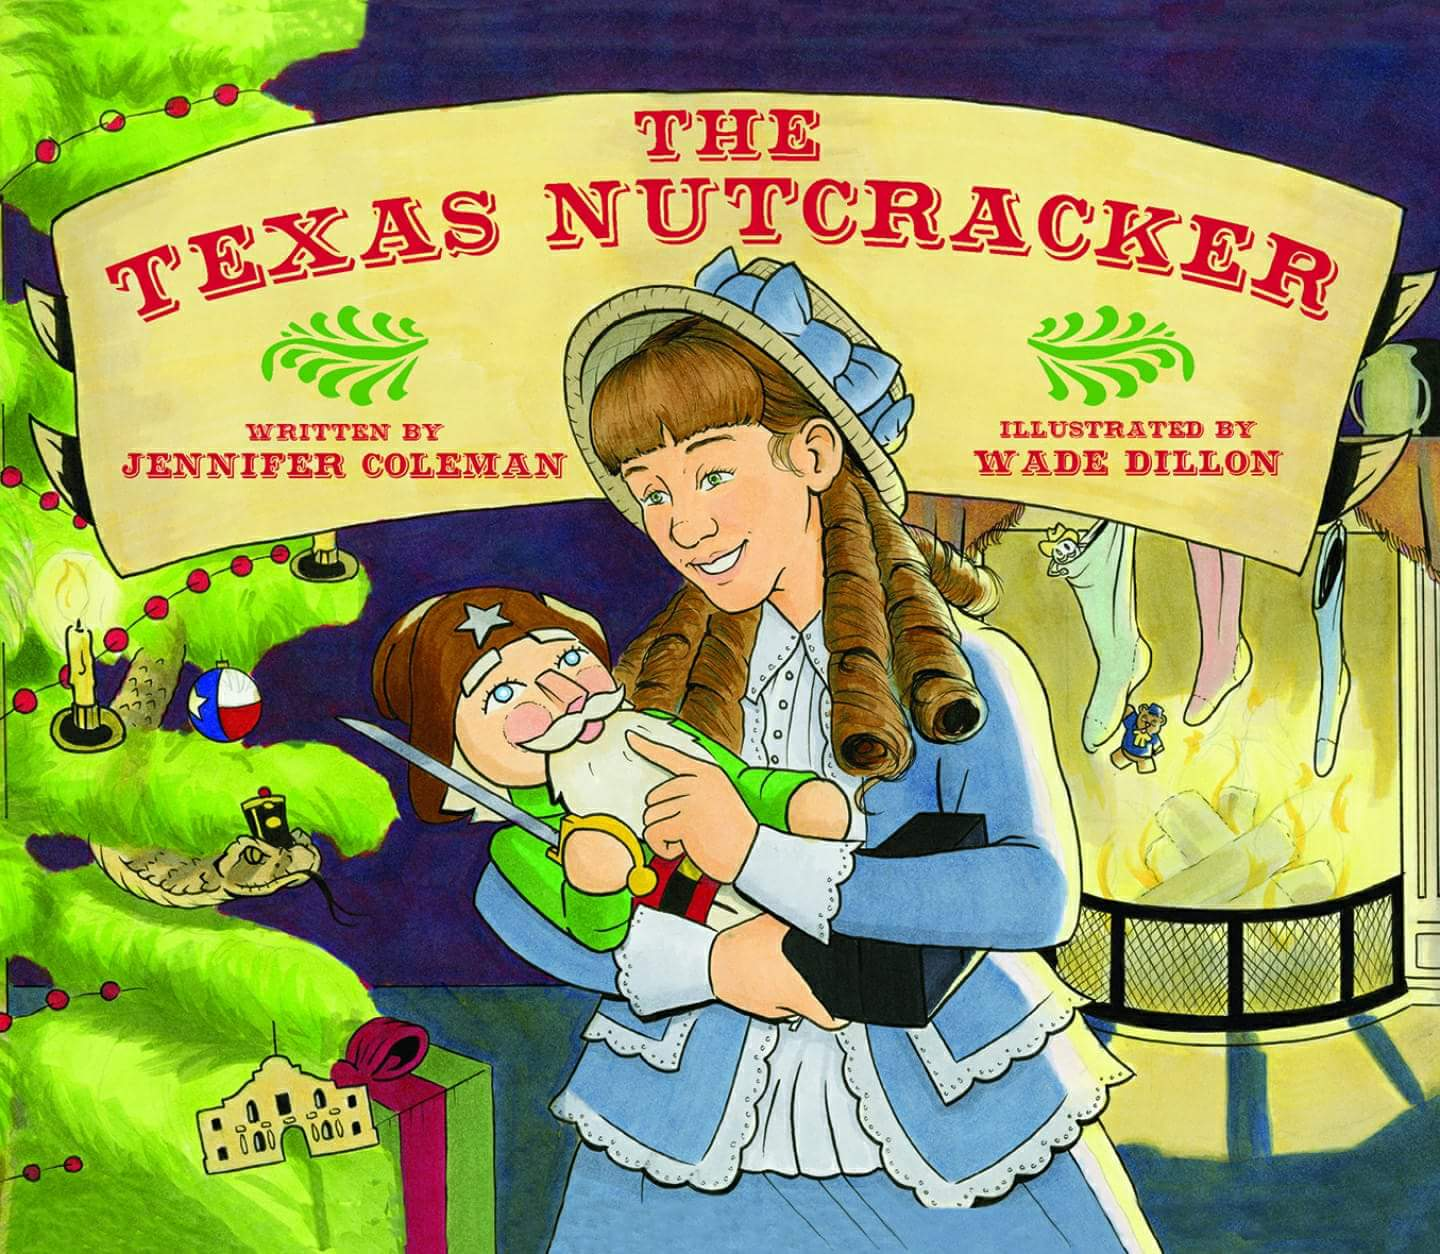 The Texas Nutcracker